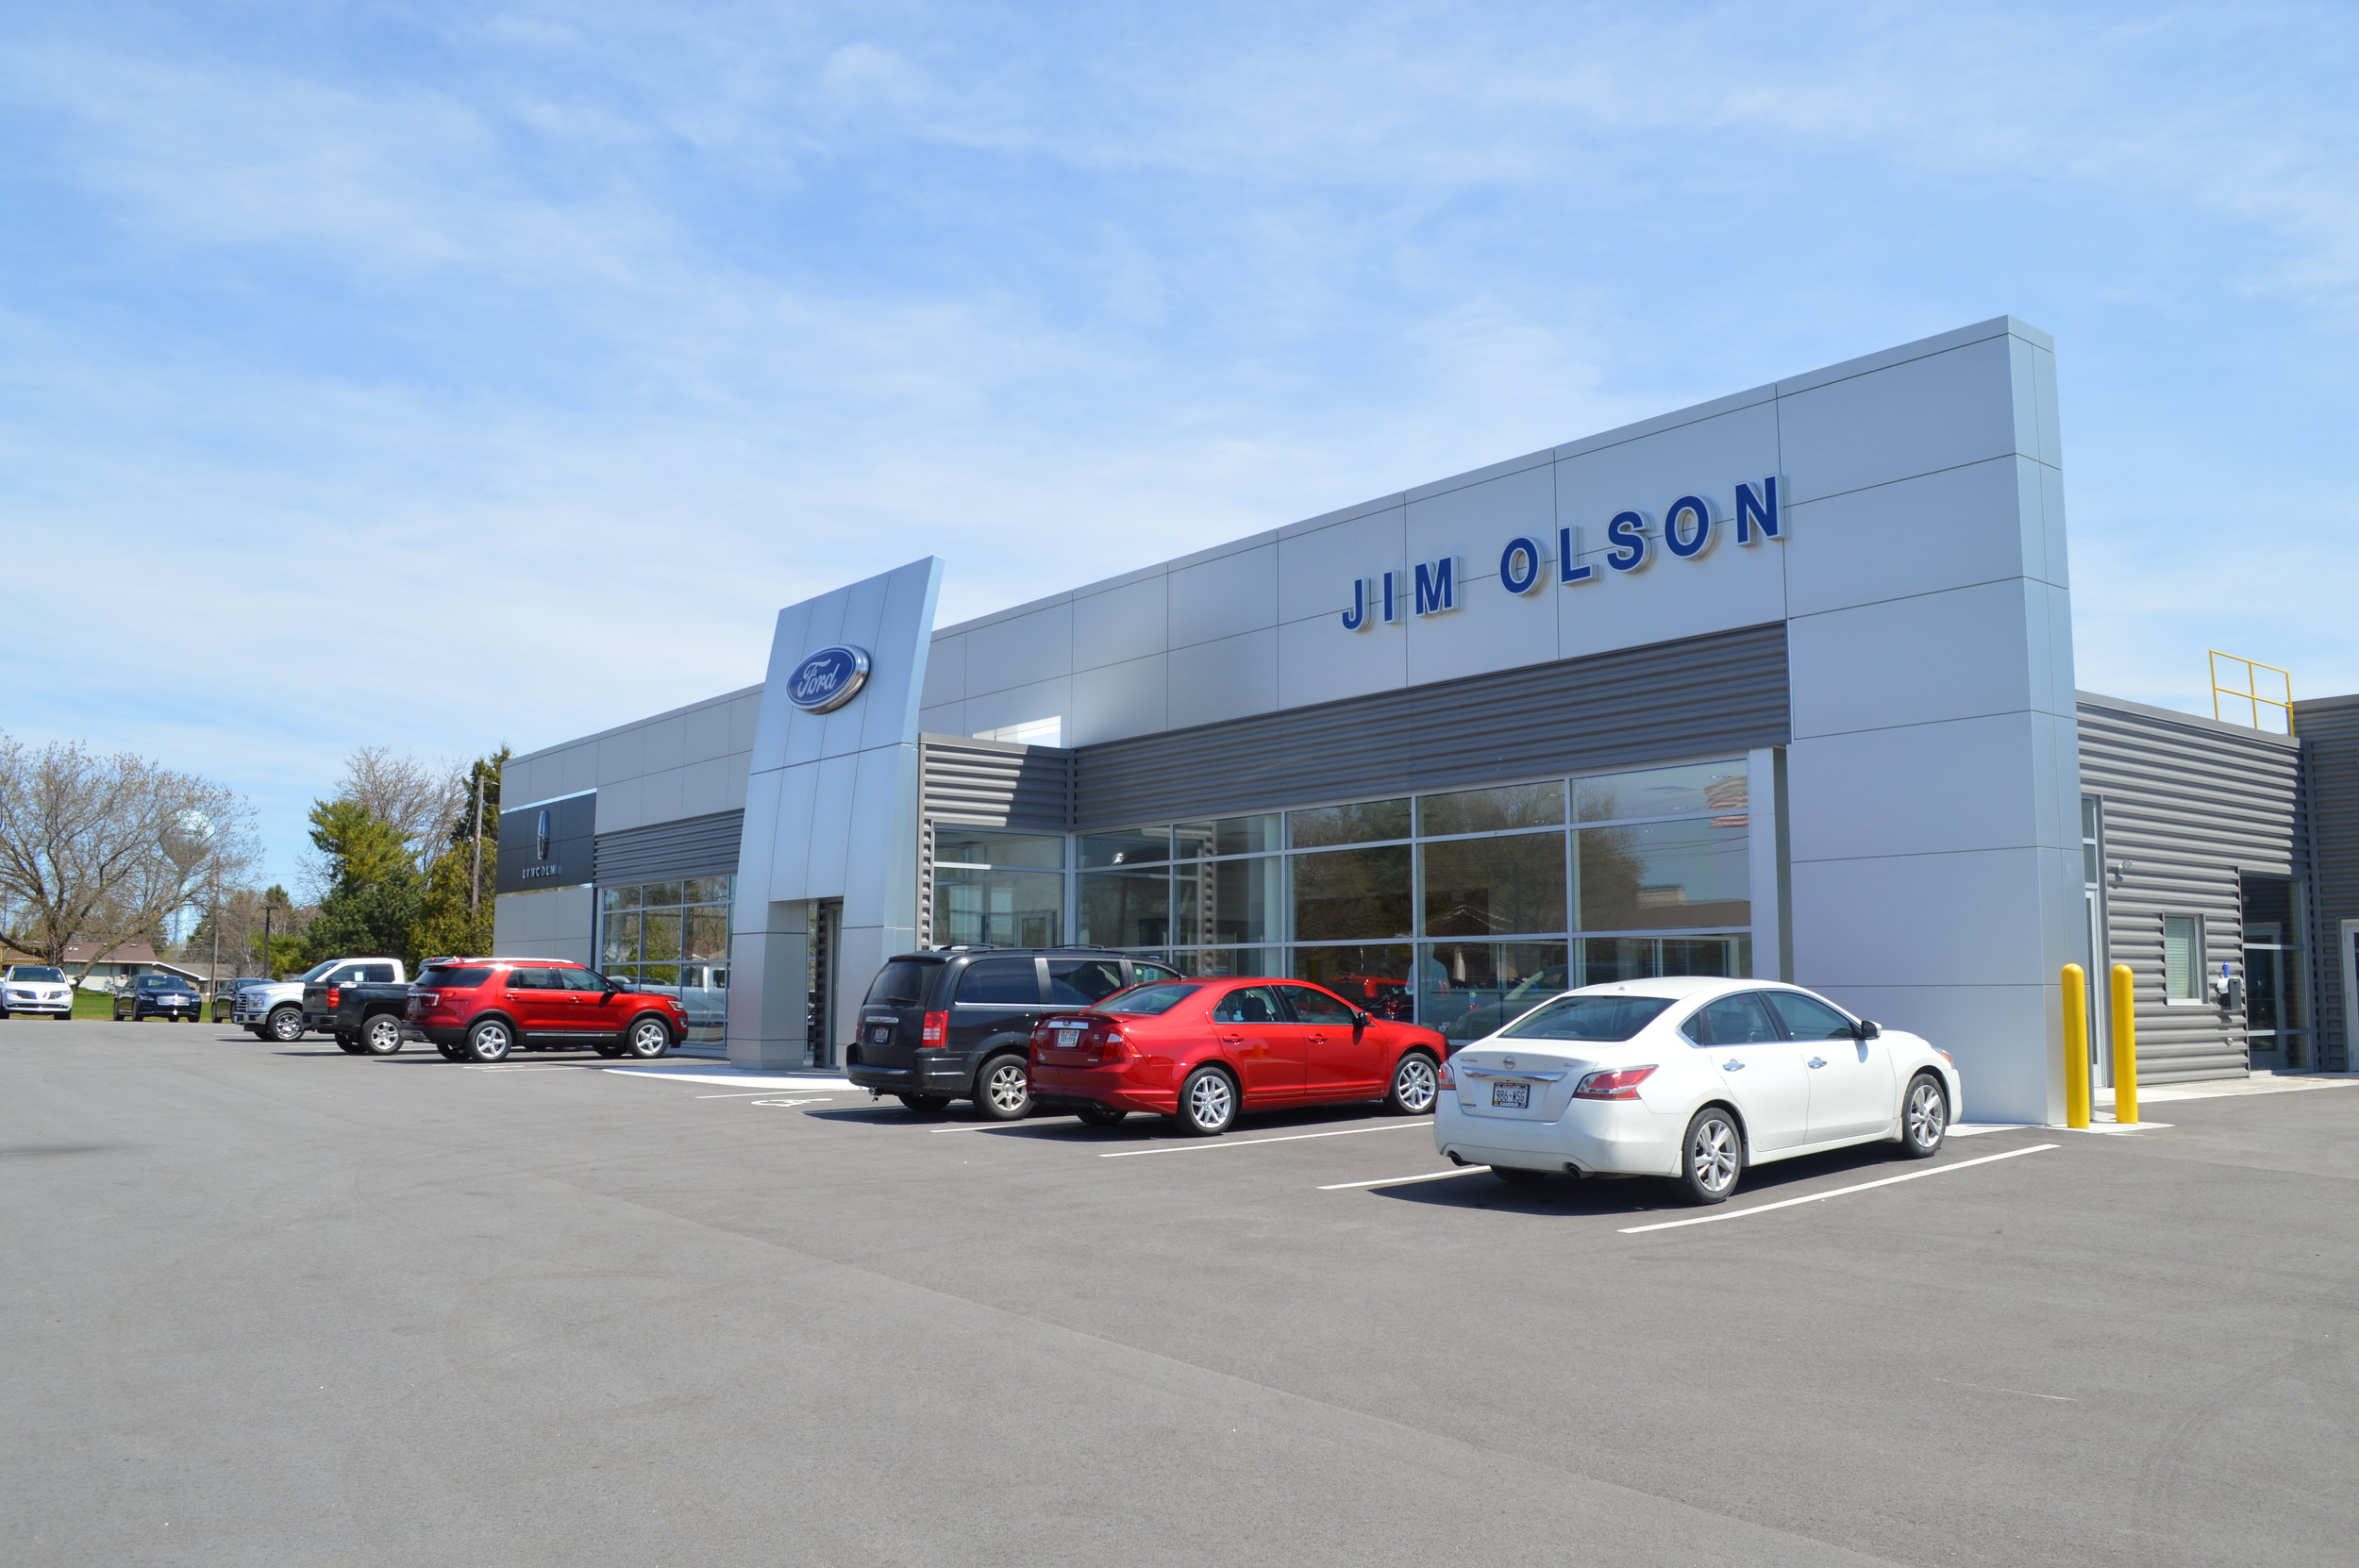 JIM OLSON FORD LINCOLN - STURGEON BAY, WISCONSIN